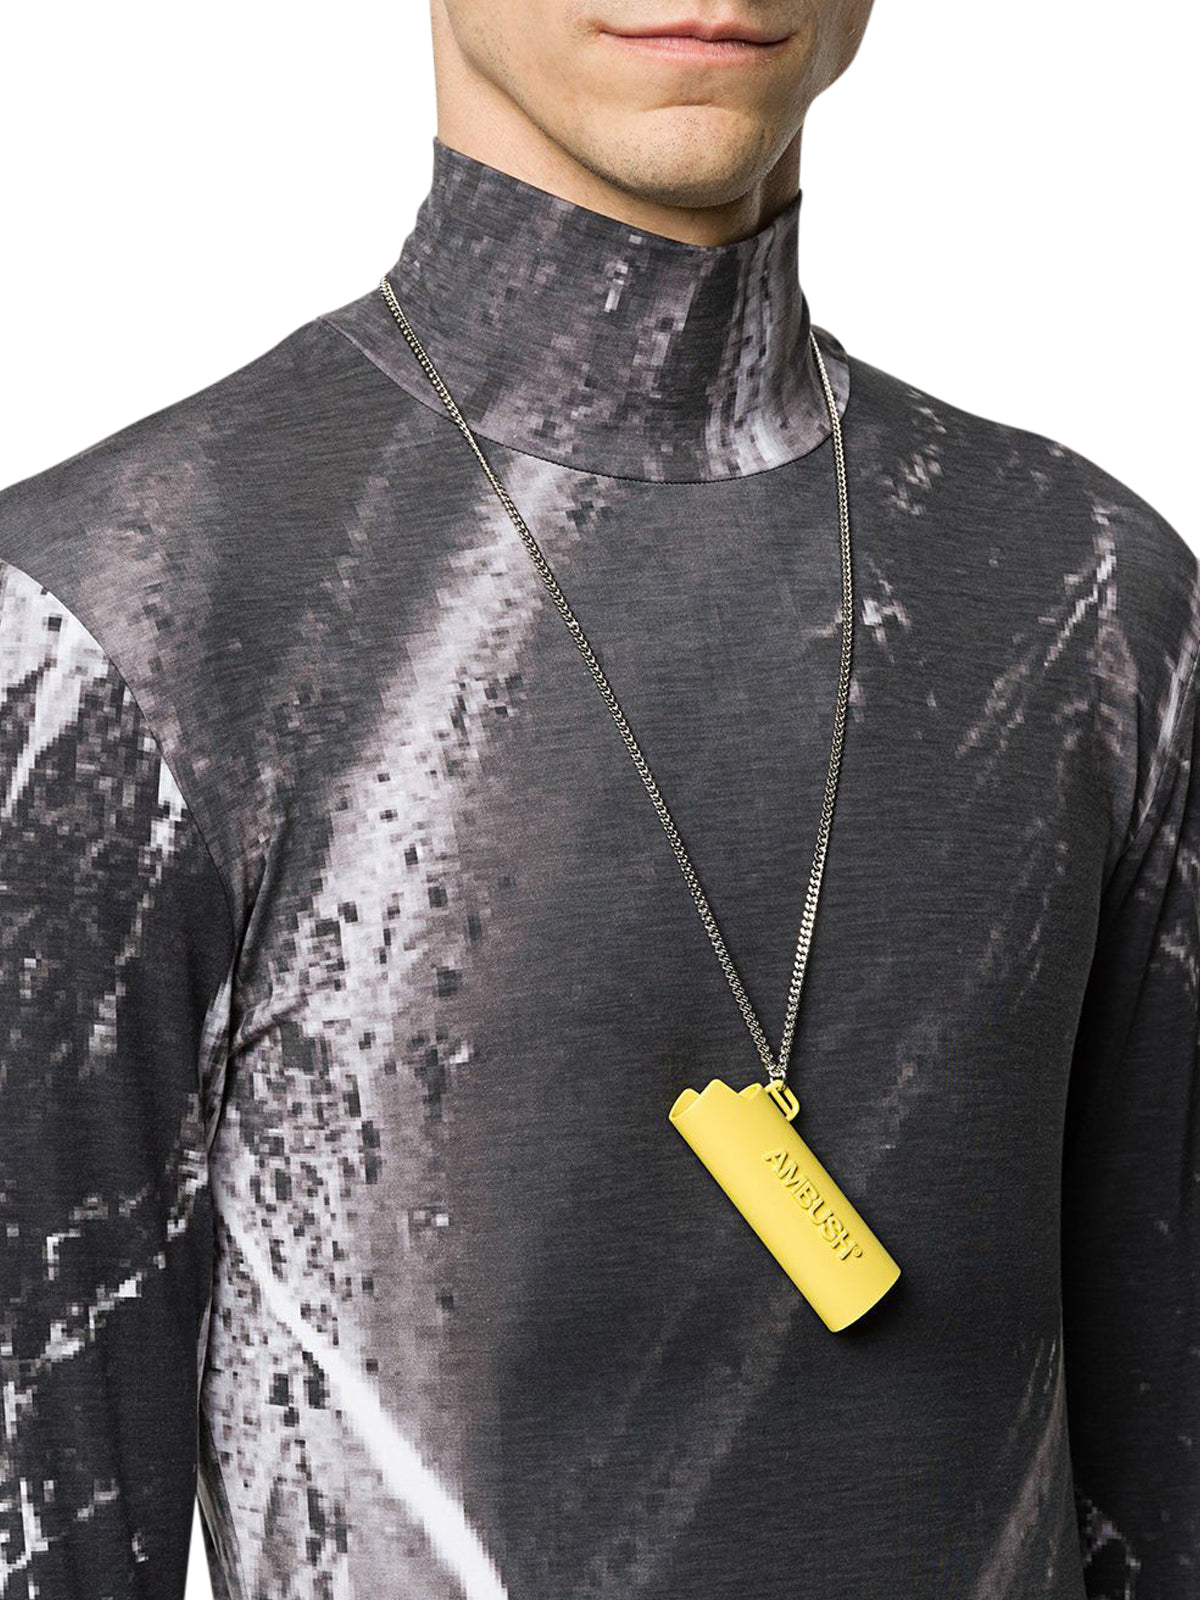 lighter pendant necklace